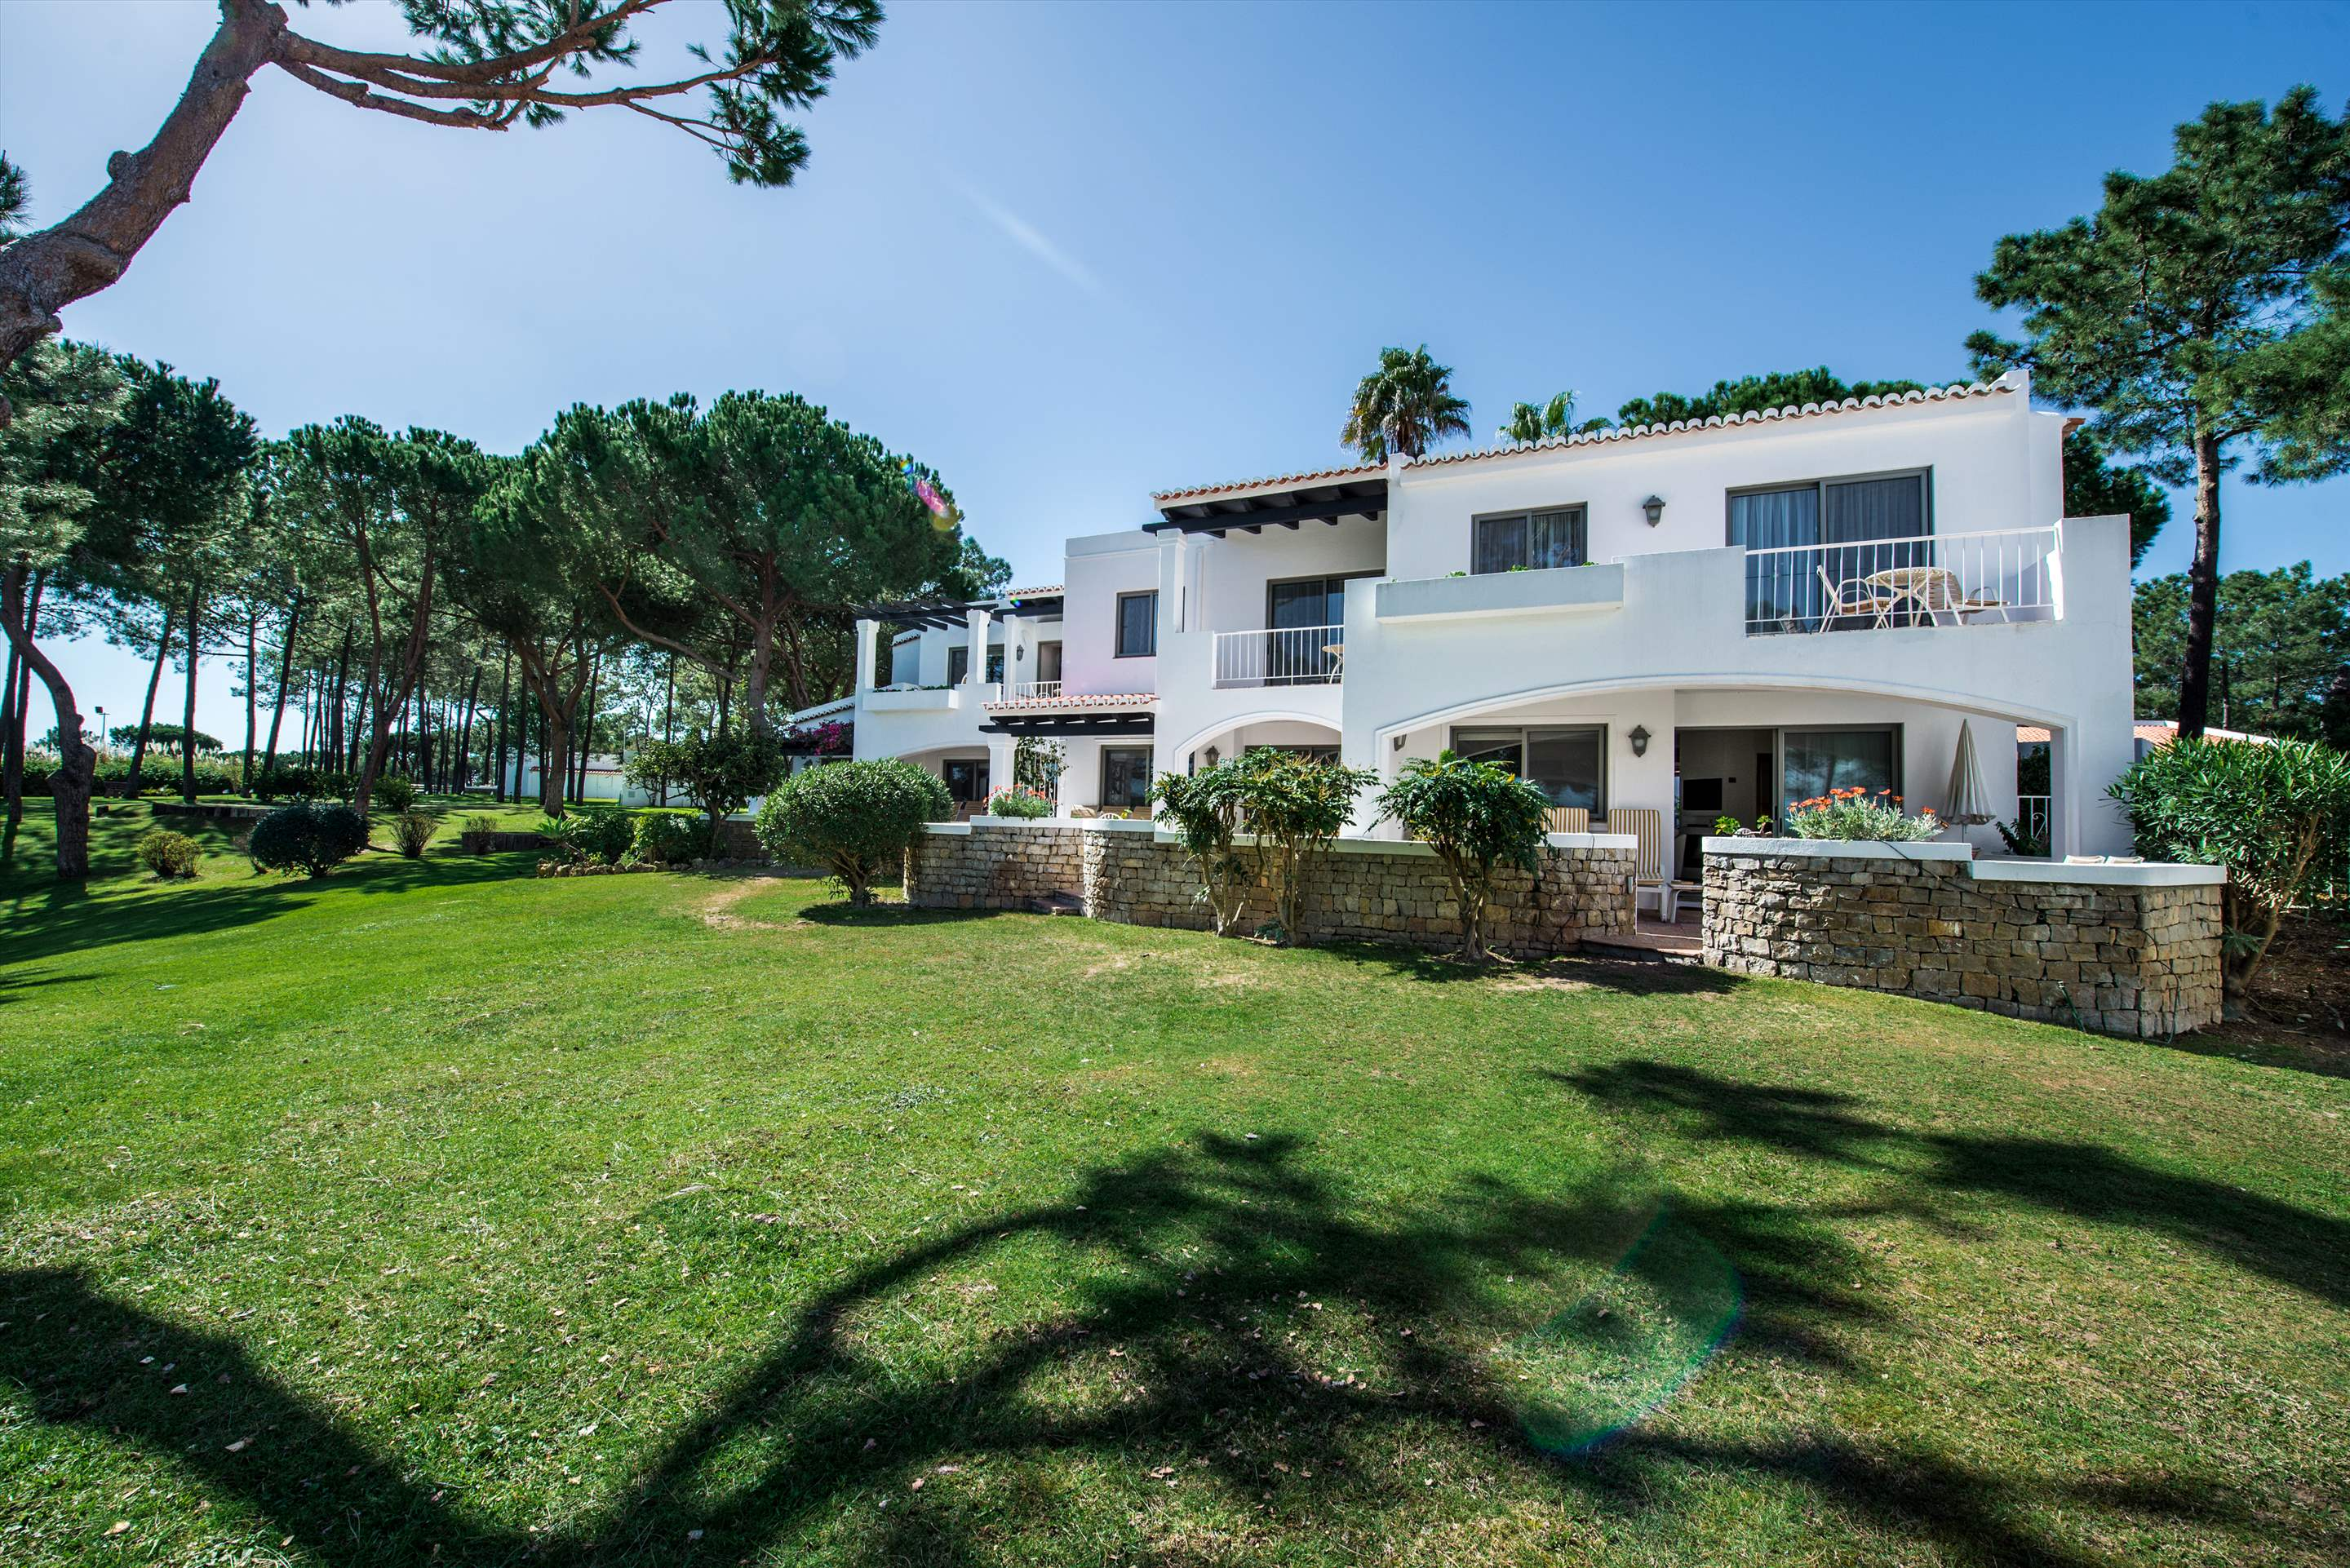 Four Seasons Country Club 1 bed, Superior - Saturday Arrival, 1 bedroom apartment in Four Seasons Country Club, Algarve